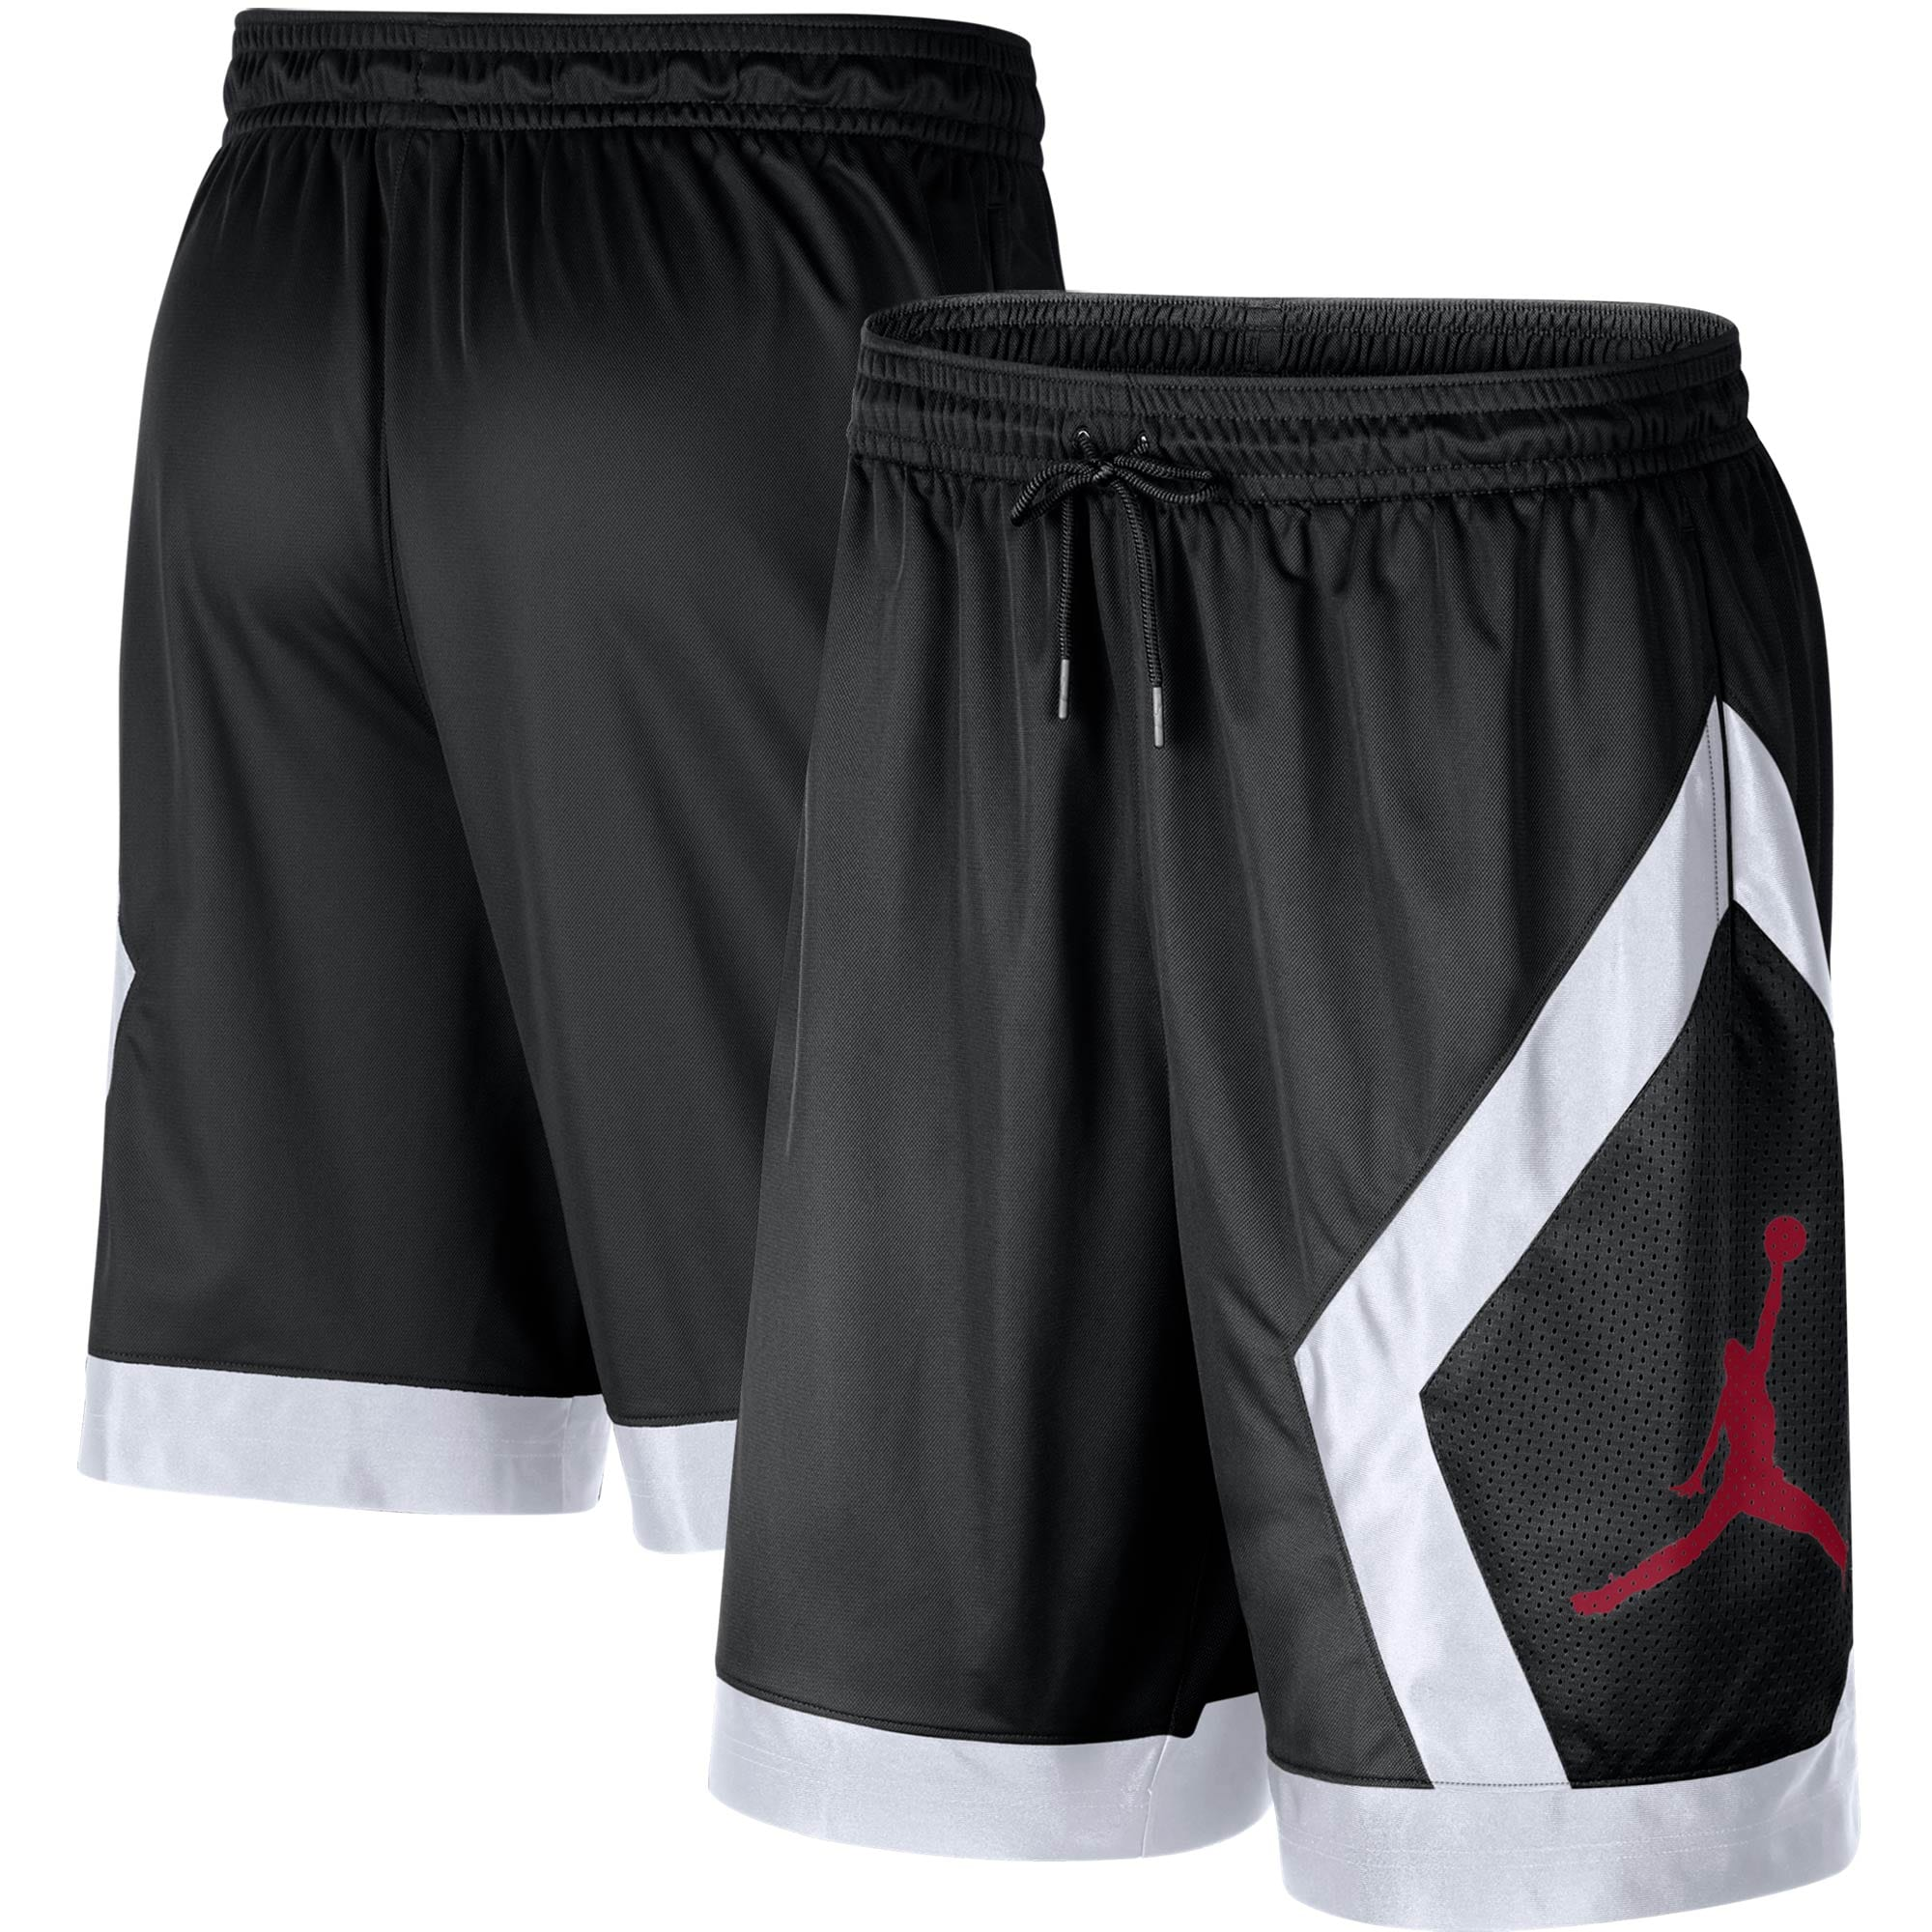 Oklahoma Sooners Jordan Brand Knit Performance Shorts - Black